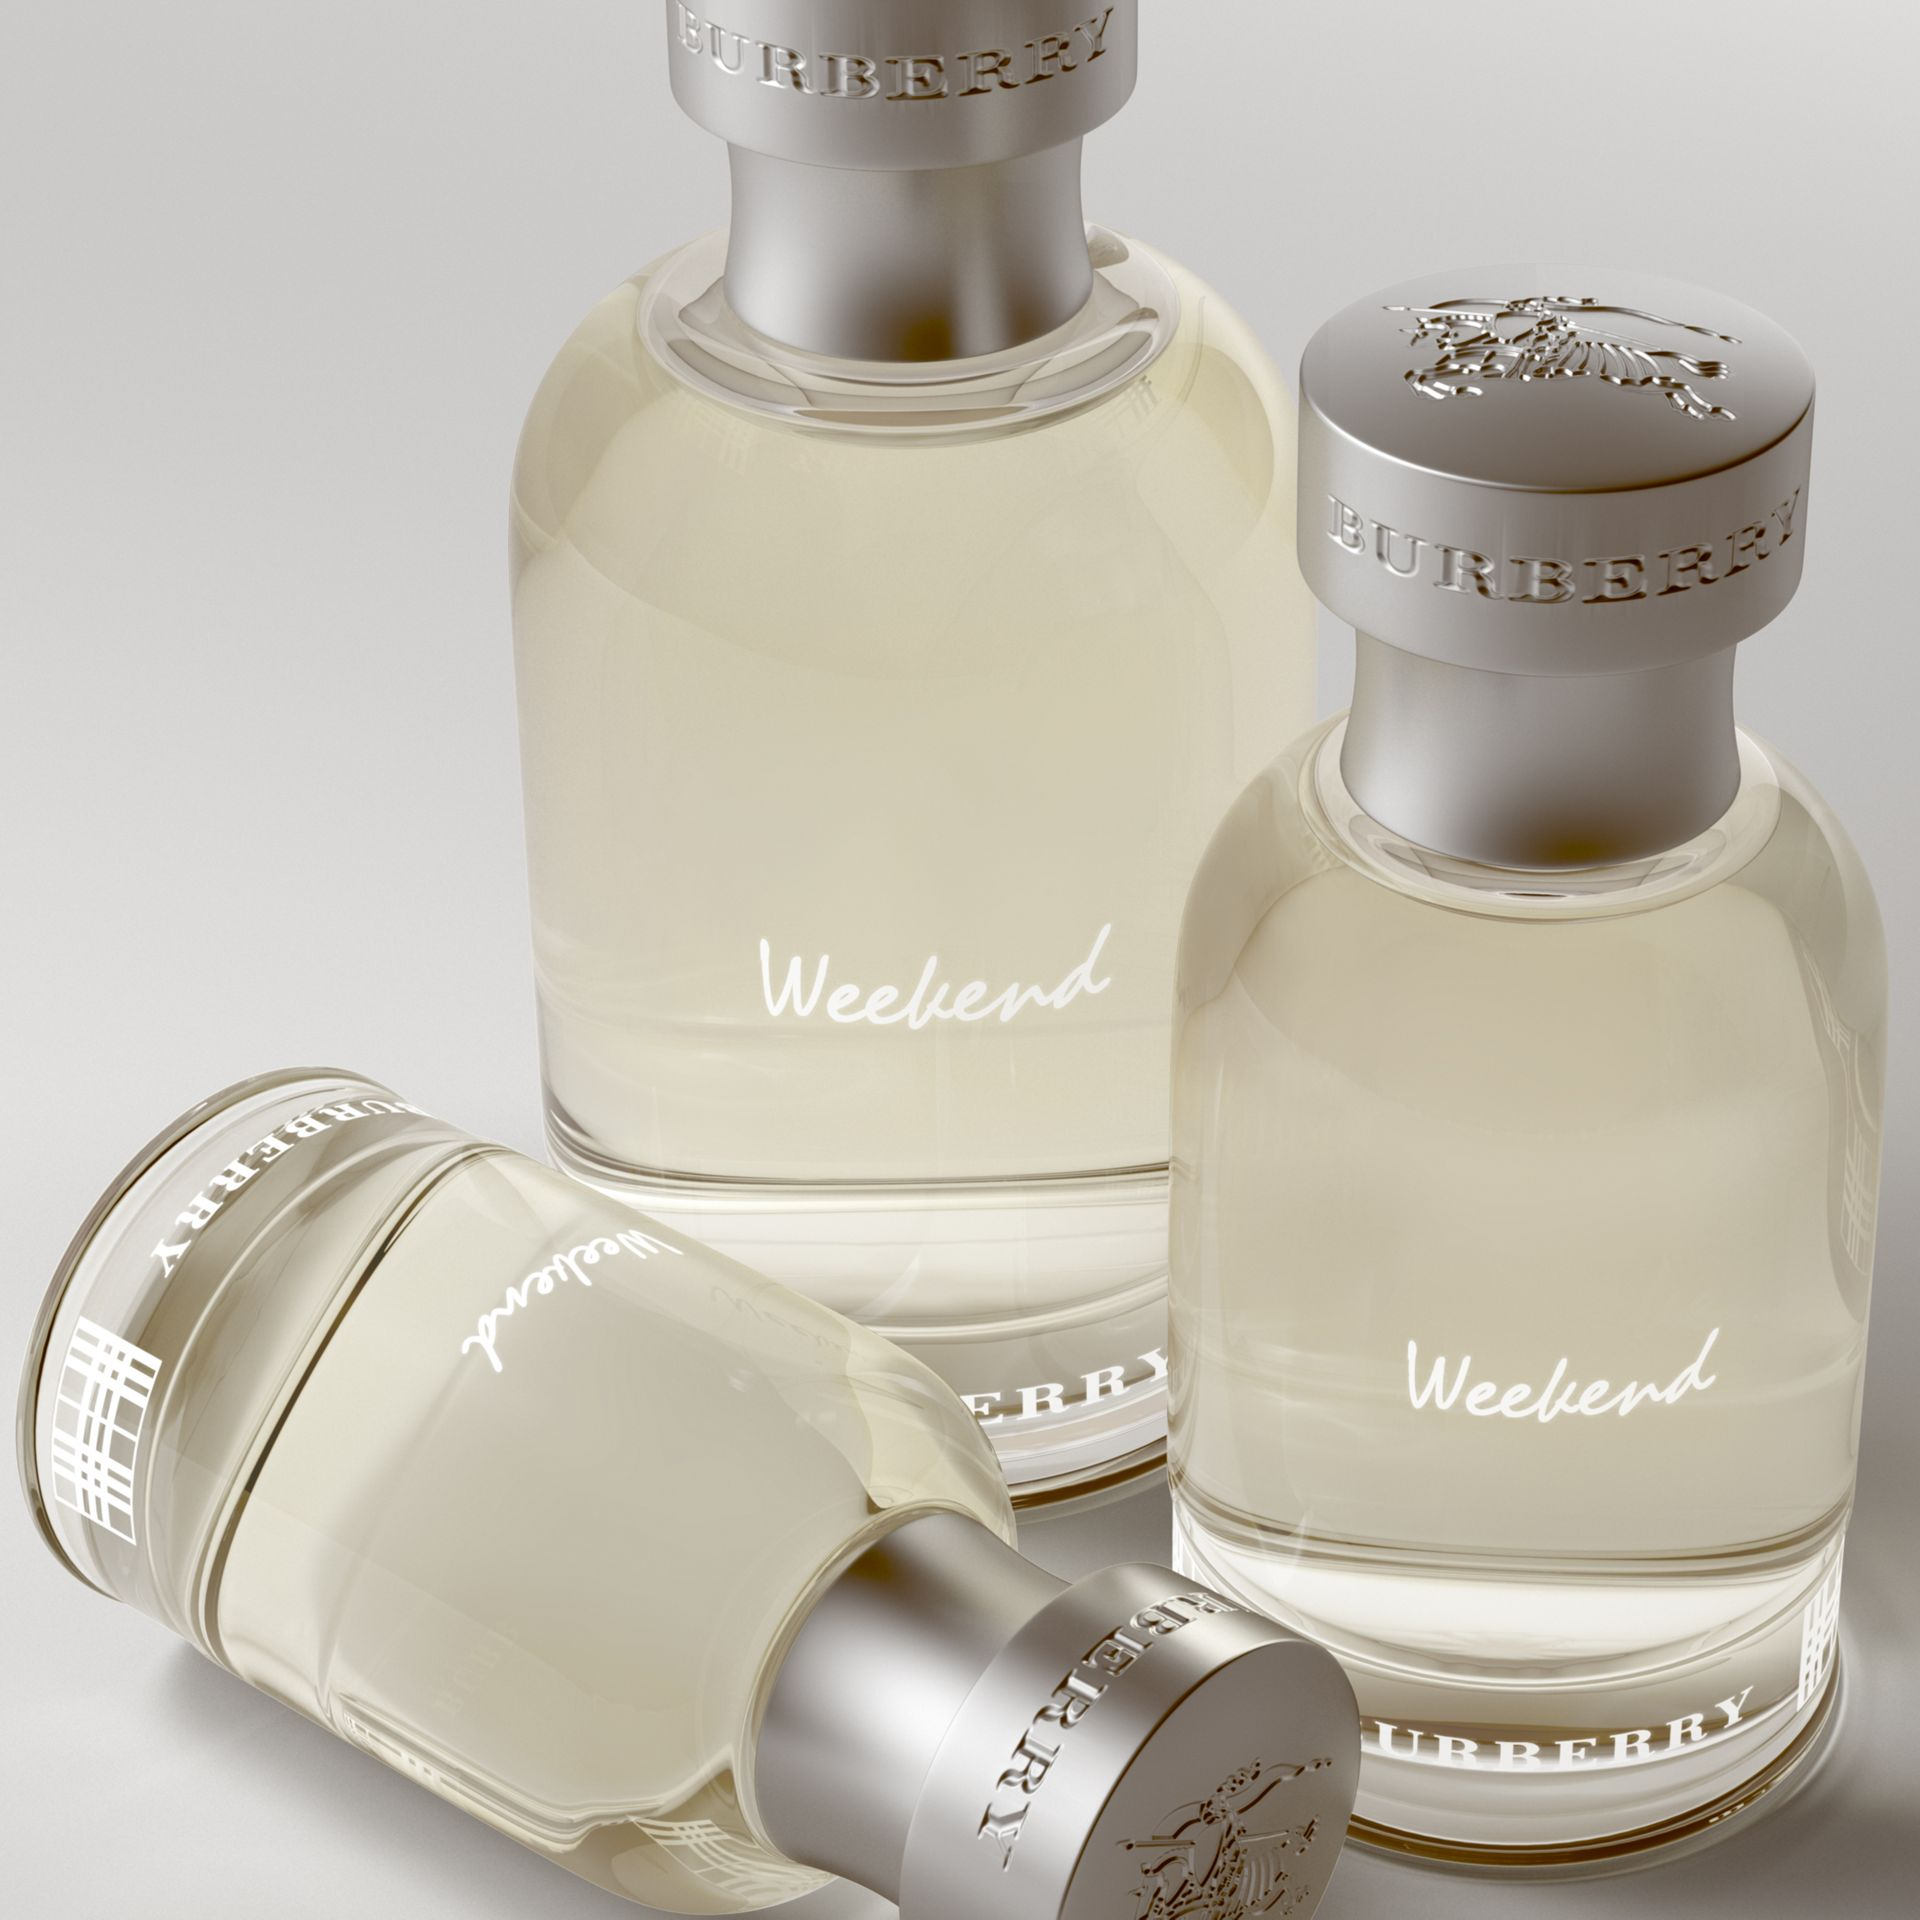 Burberry Weekend Eau de toilette 100 ml - photo de la galerie 2